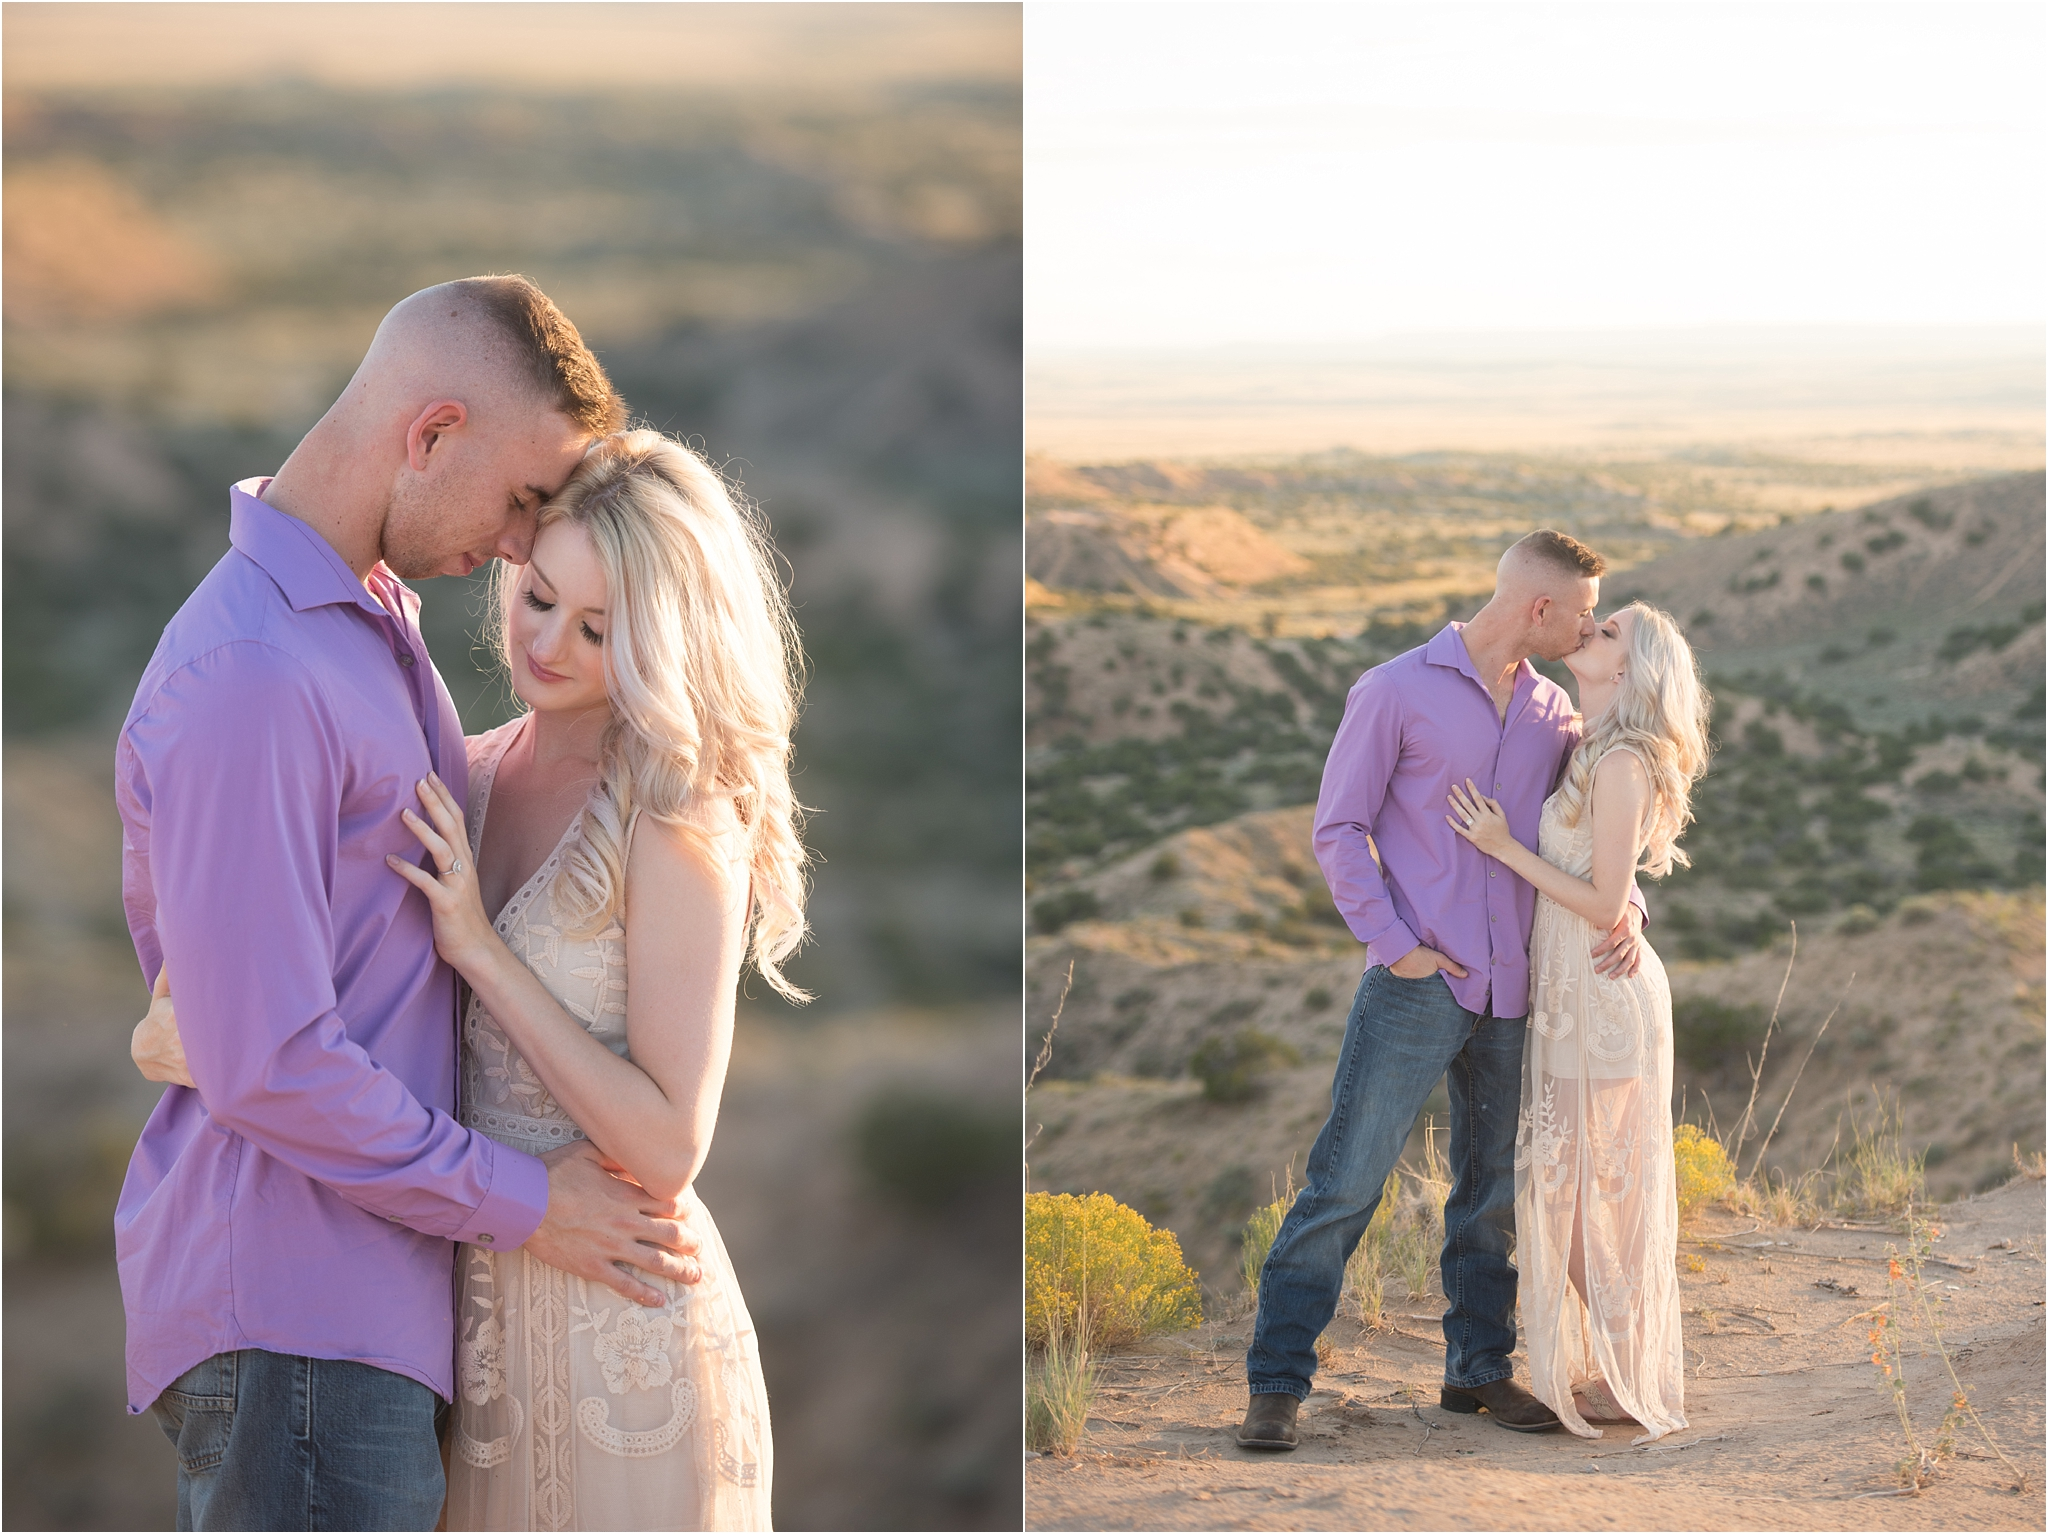 kayla kitts photography - new mexico wedding photographer - albuquerque engagement session_0015.jpg